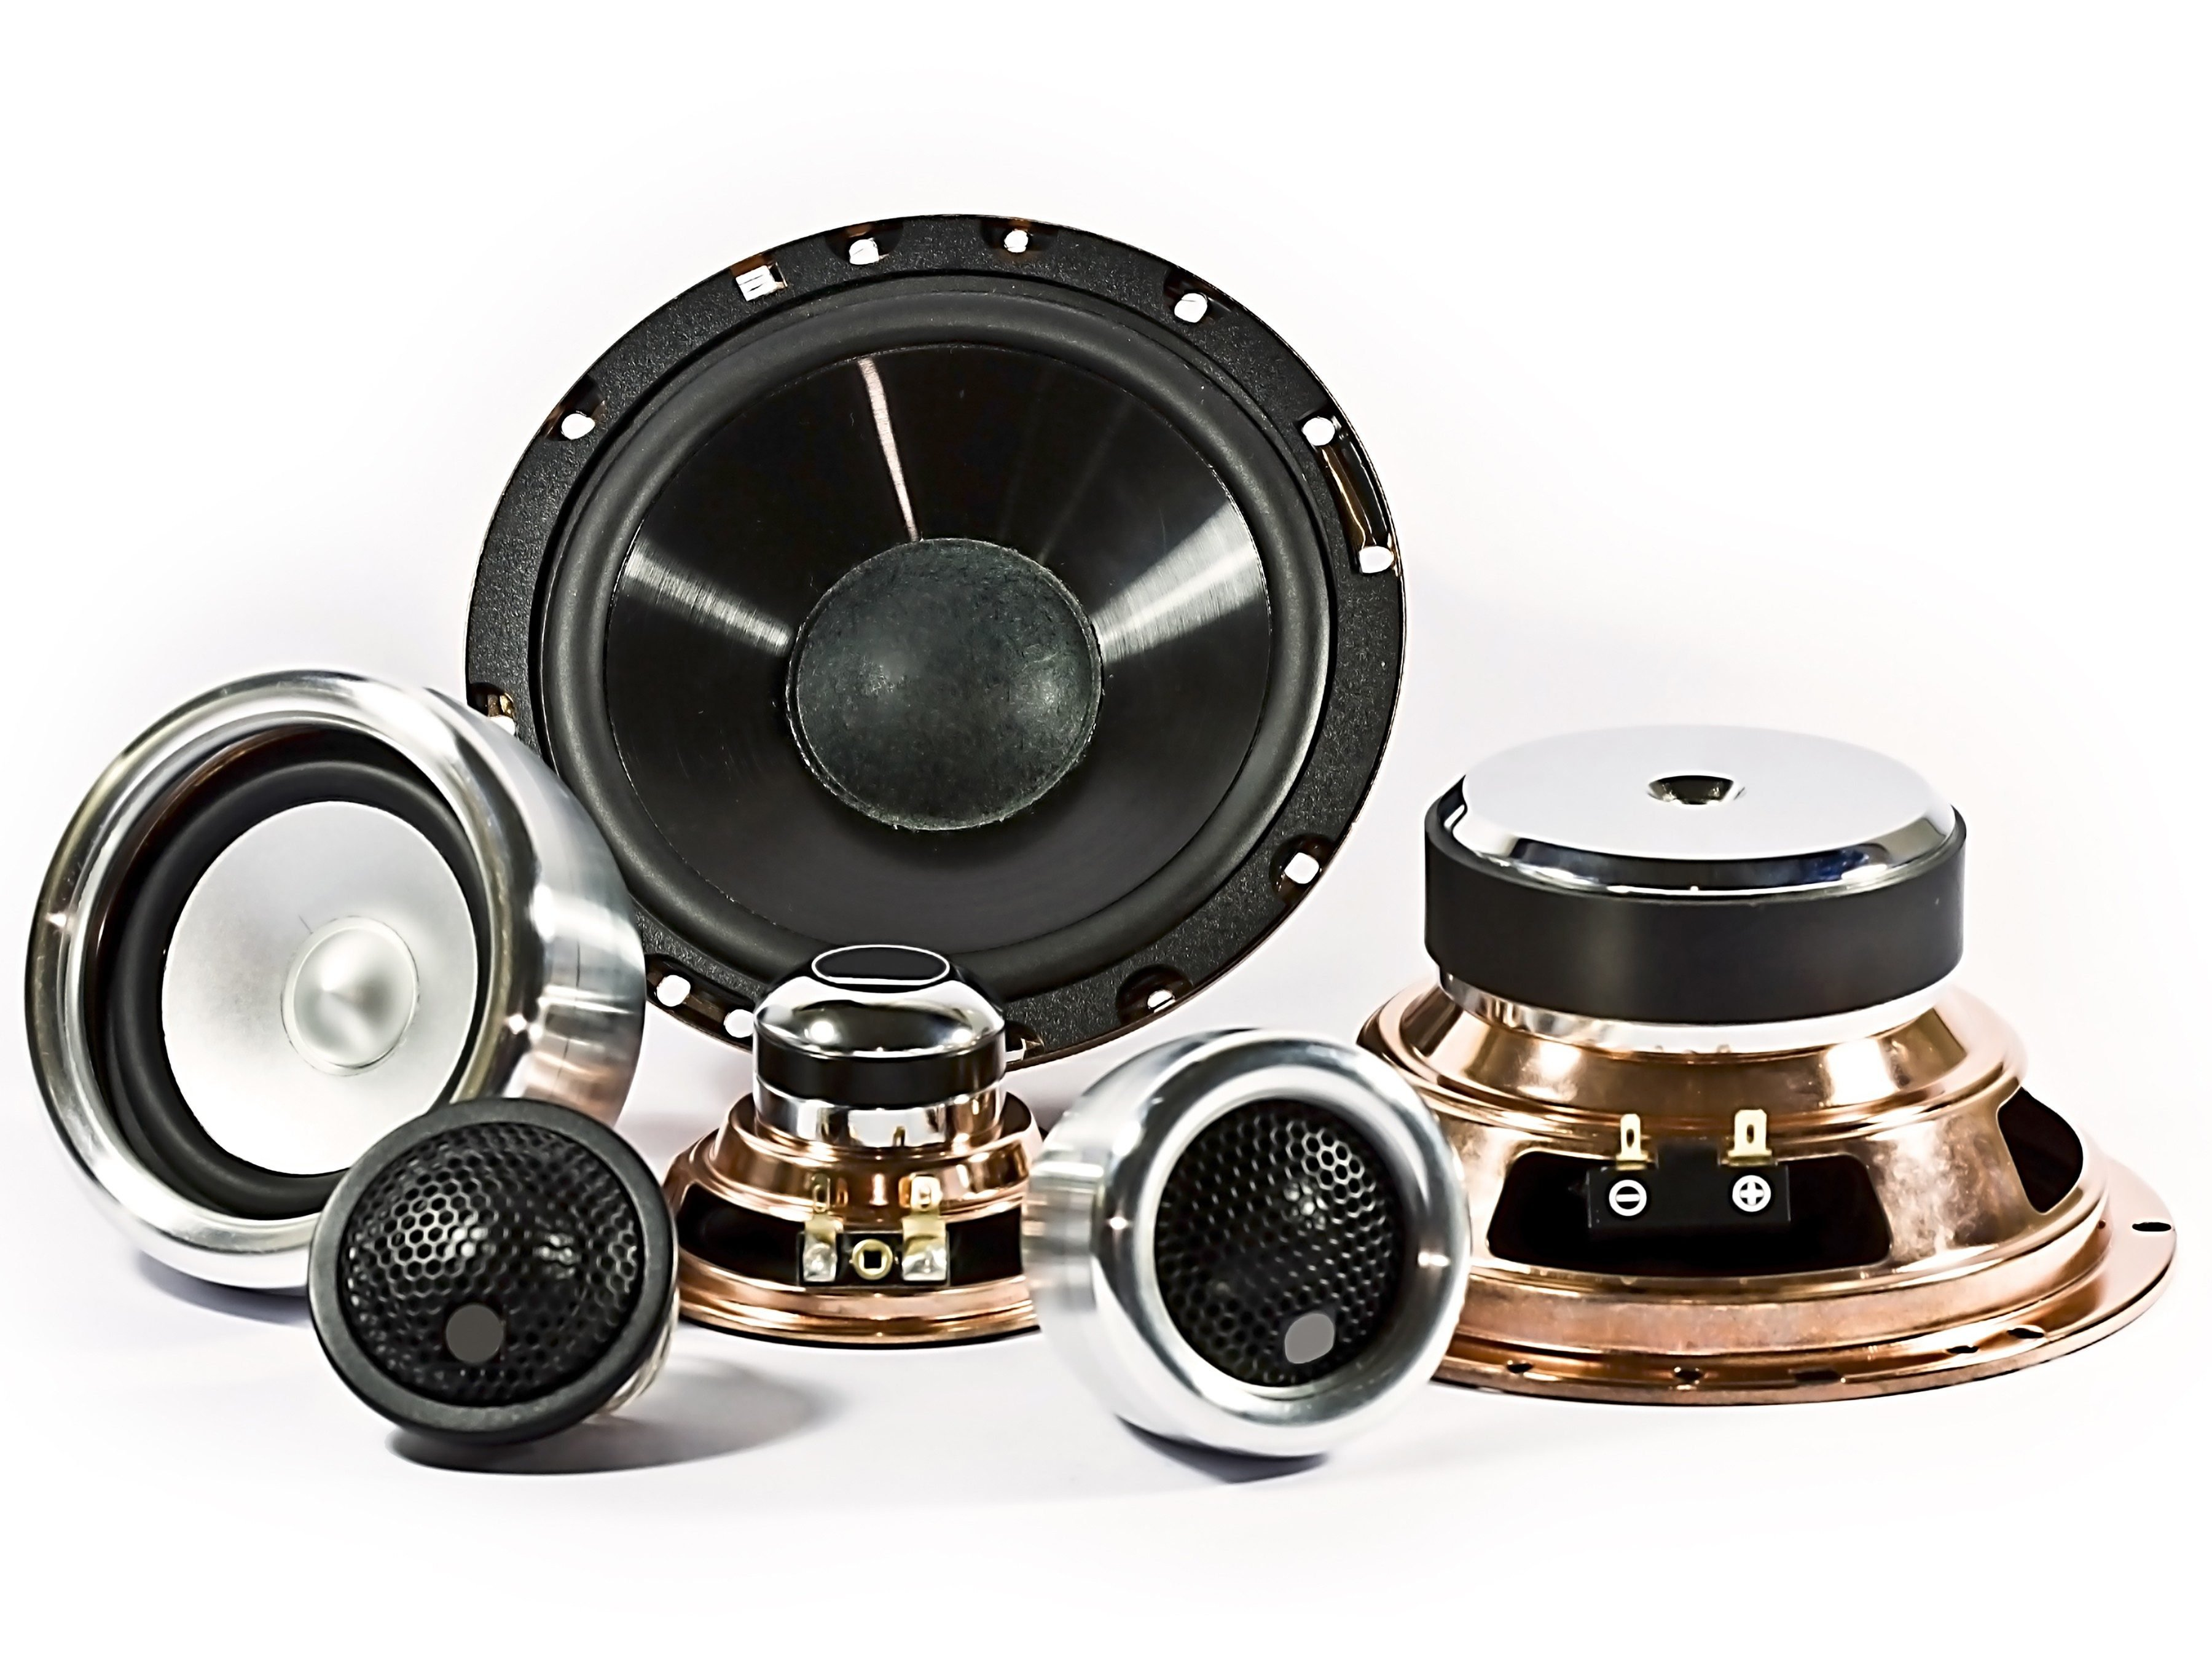 4. Upgraded Car Speakers